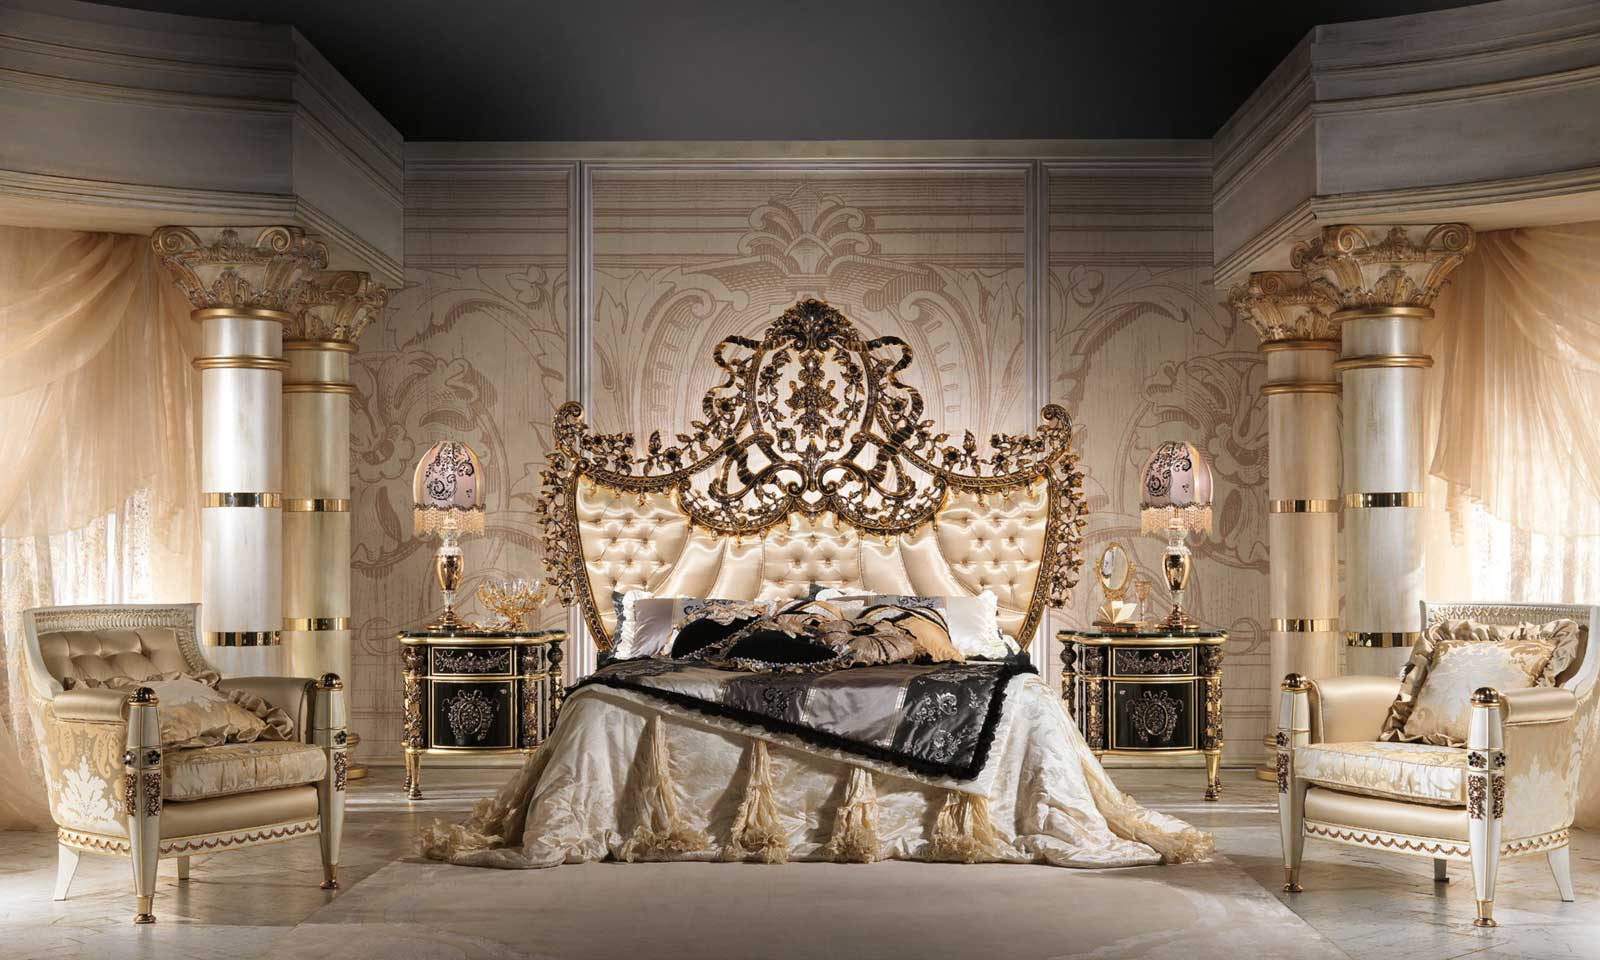 Royal Bedroom 2